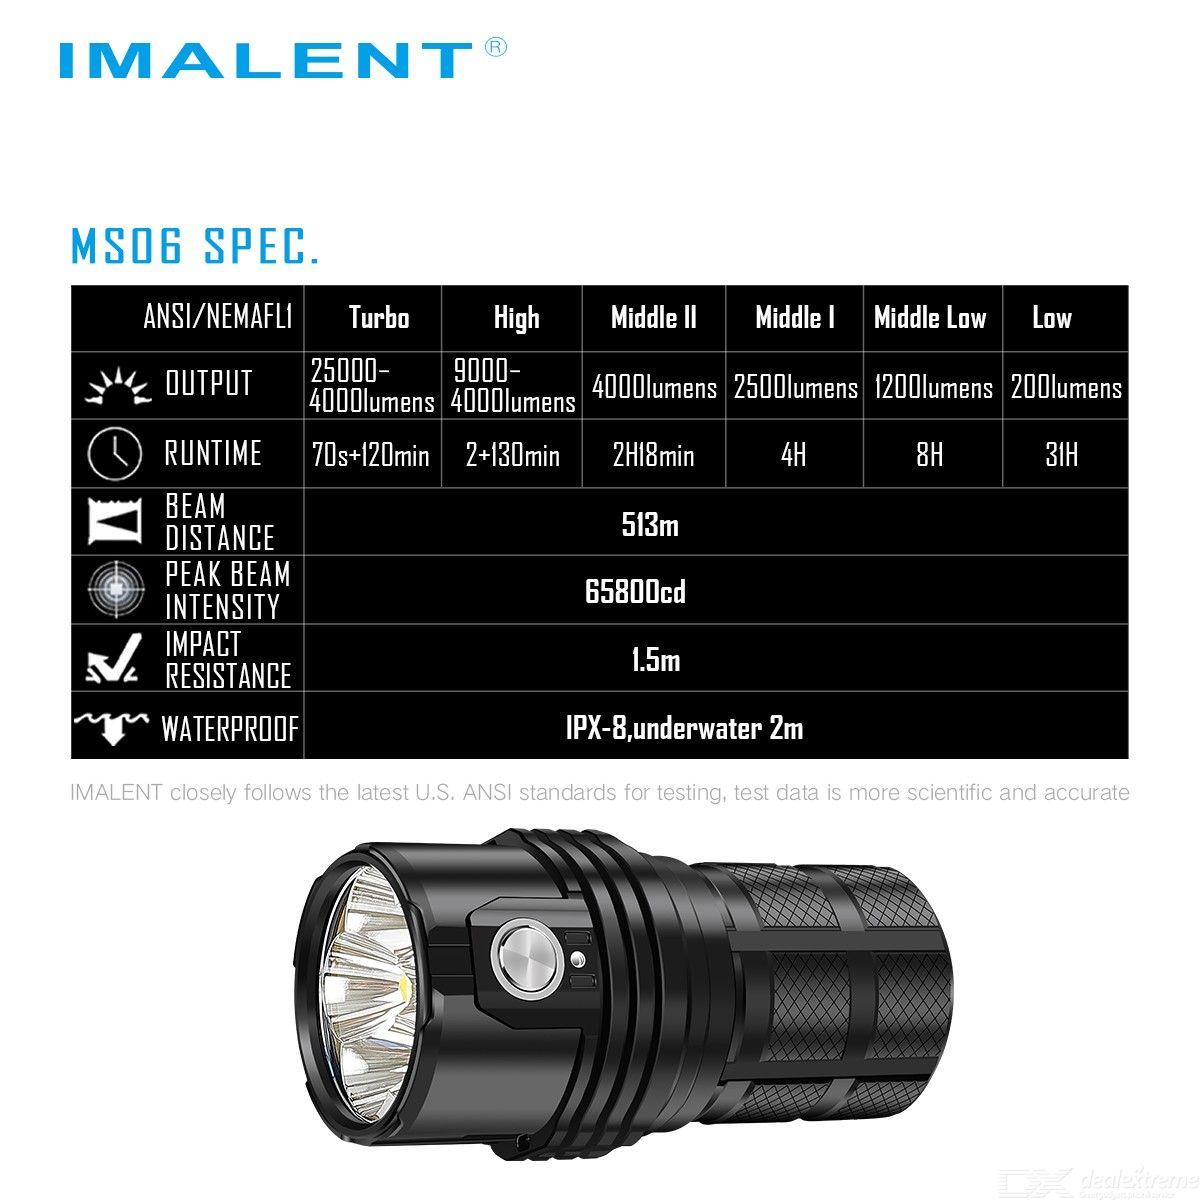 IMALENT MS06 CAN-SIZED 25000 Lumens 21700 Tiny Monster Of Tactical Flashilght withe battery